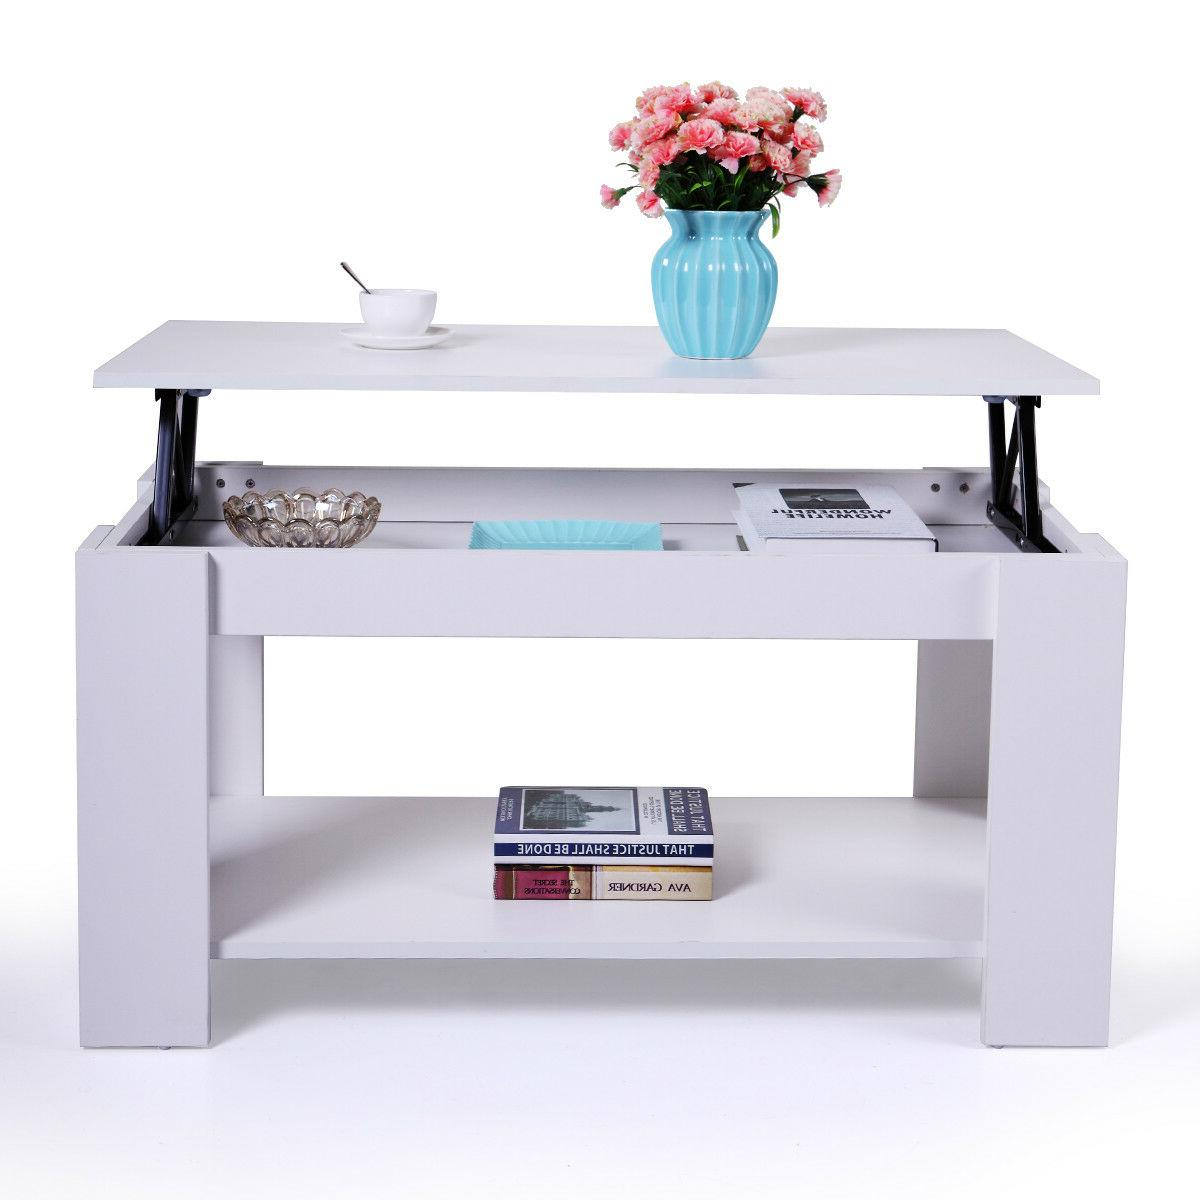 Wood Lift Table with White Living Room